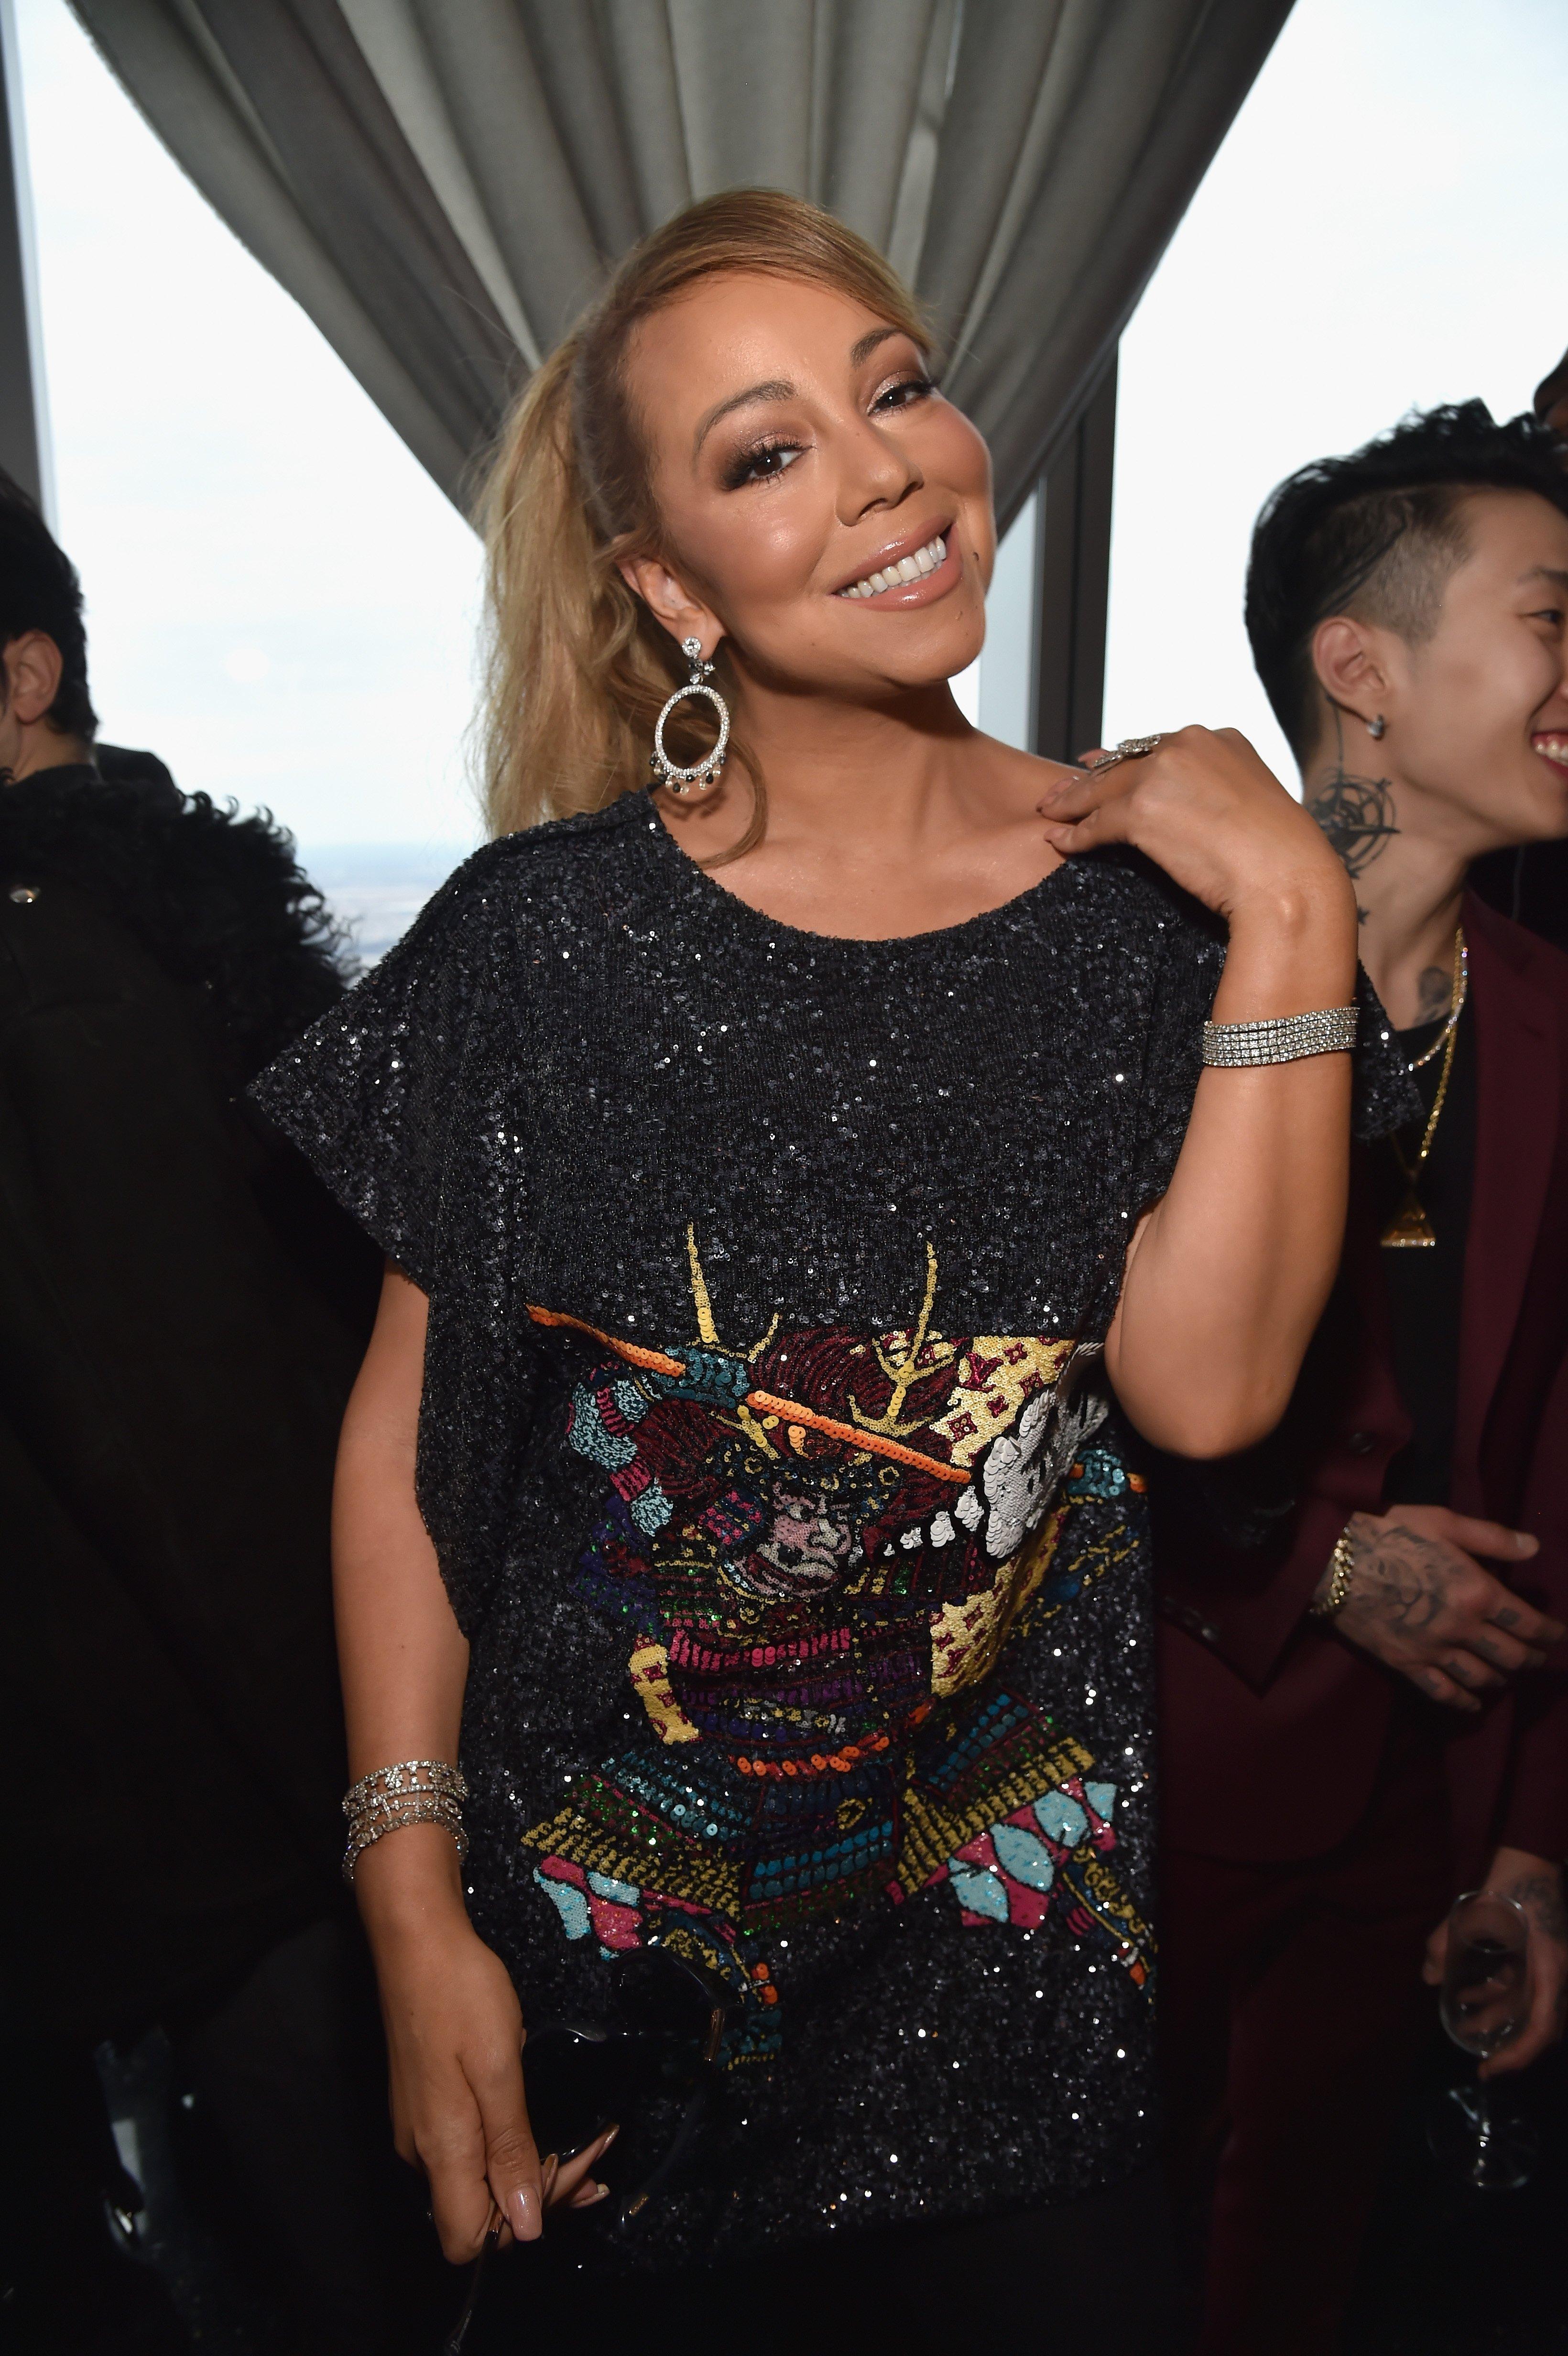 Image Credits: Getty Images / Kevin Mazur | Mariah Carey attends Roc Nation THE BRUNCH at One World Observatory on January 27, 2018 in New York City.